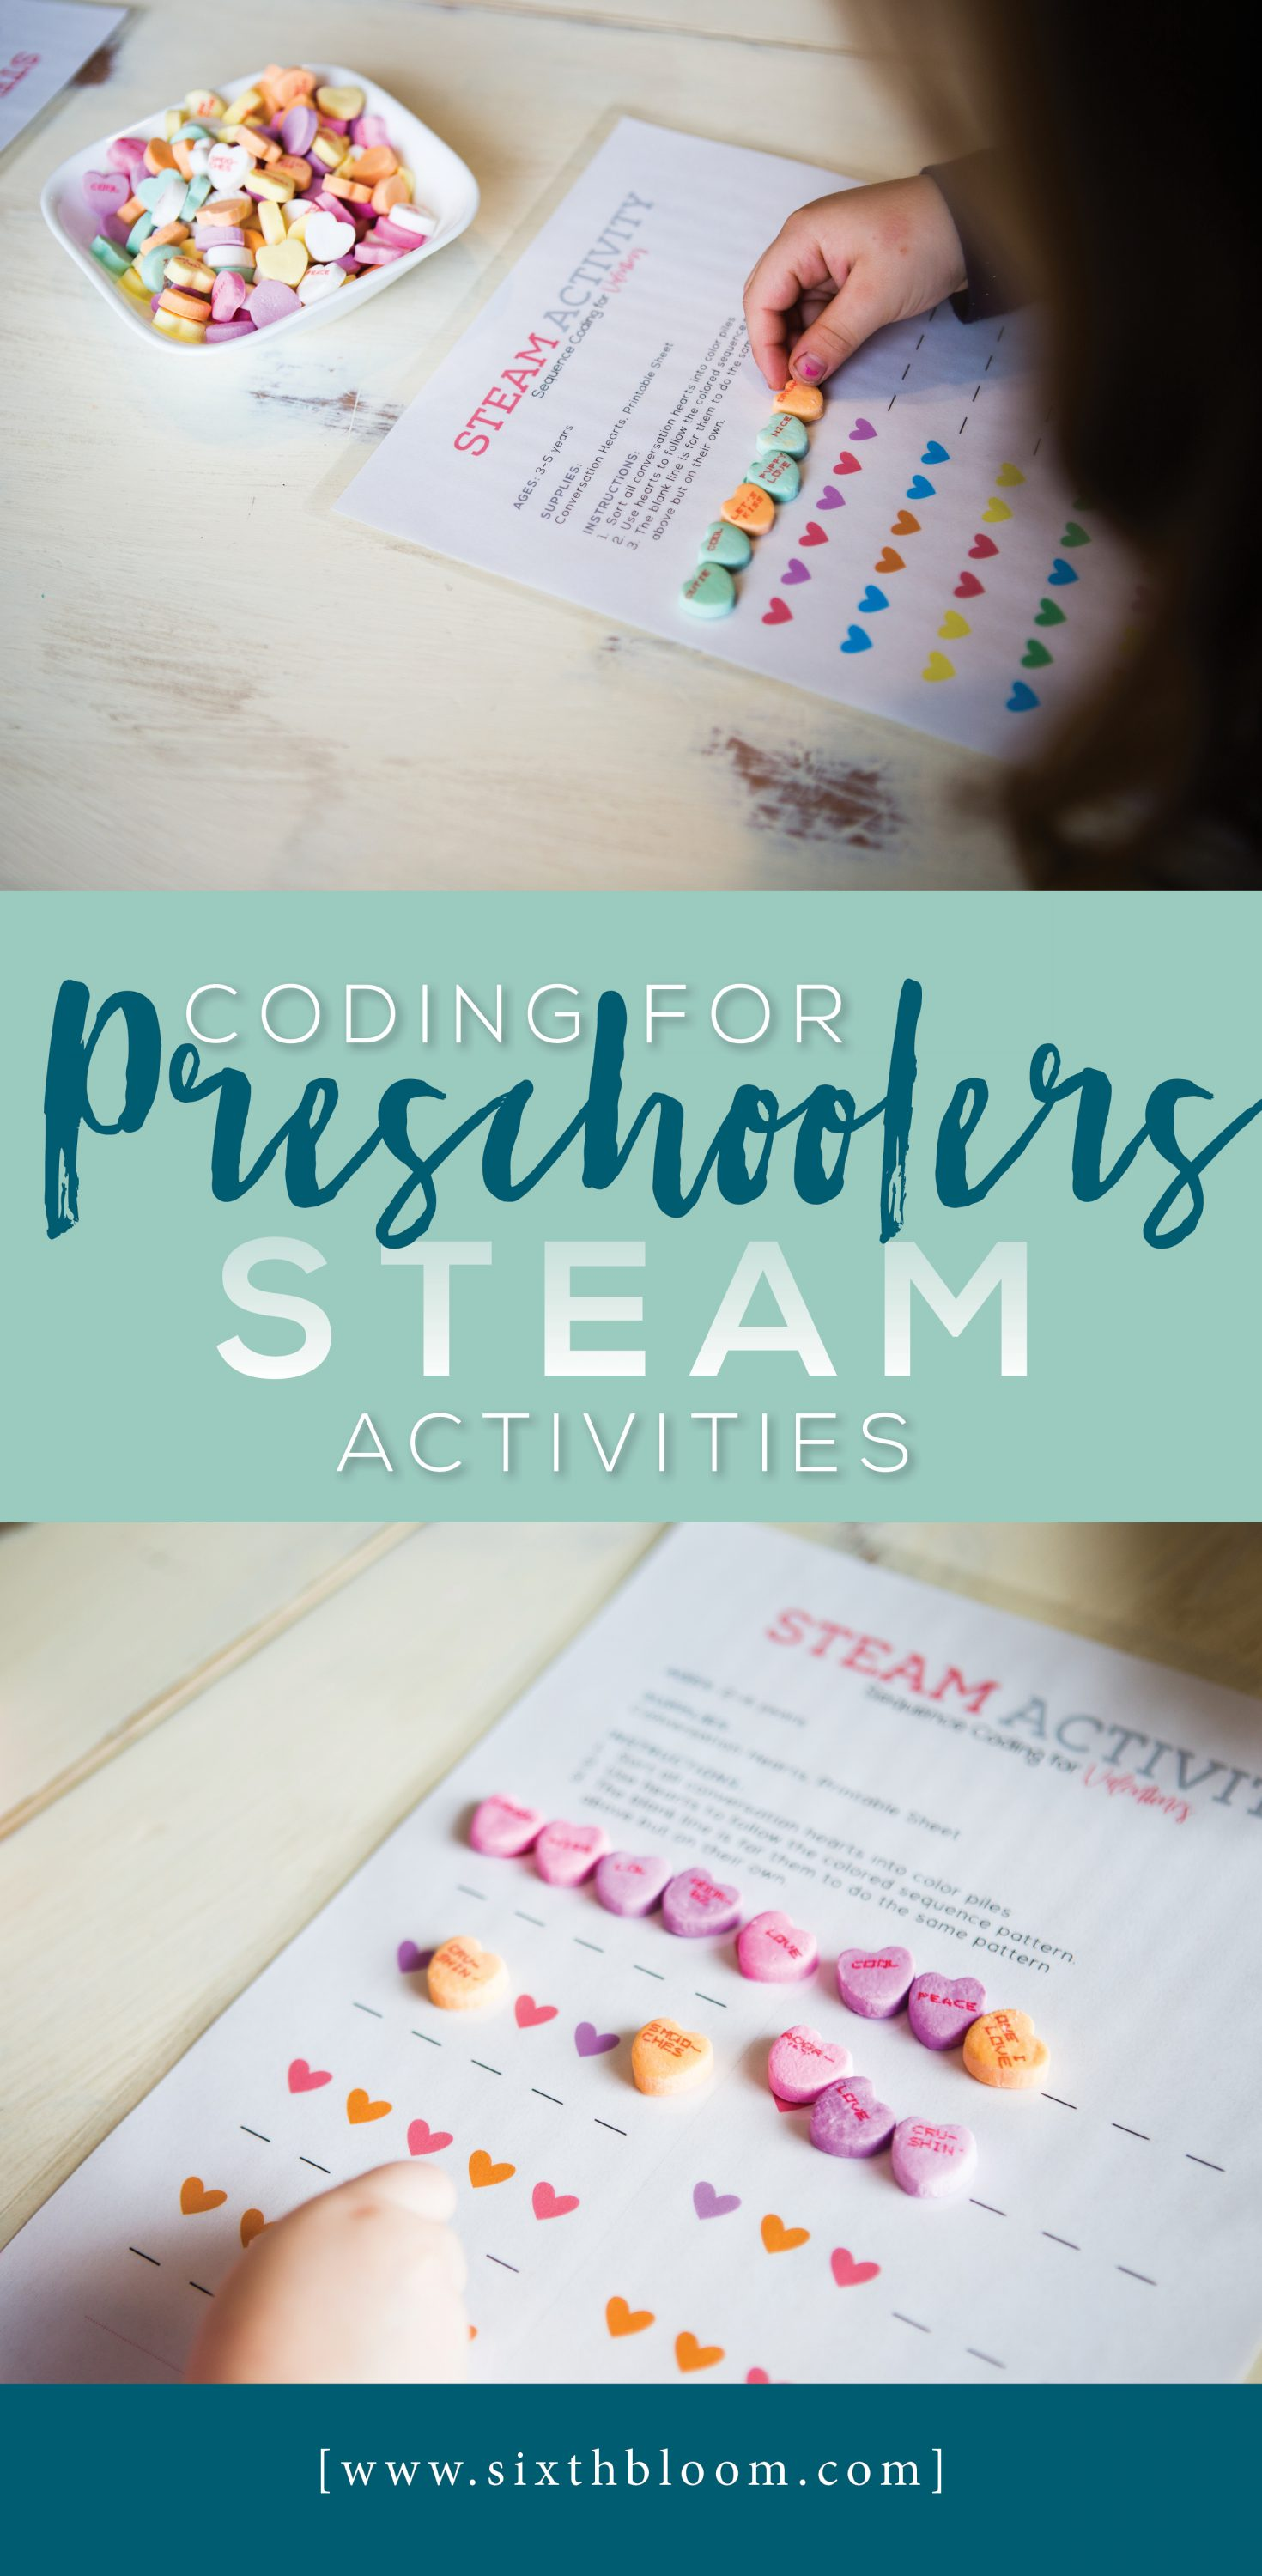 Coding for Preschoolers | STEAM Activities - Sixth Bloom- Lifestyle ...